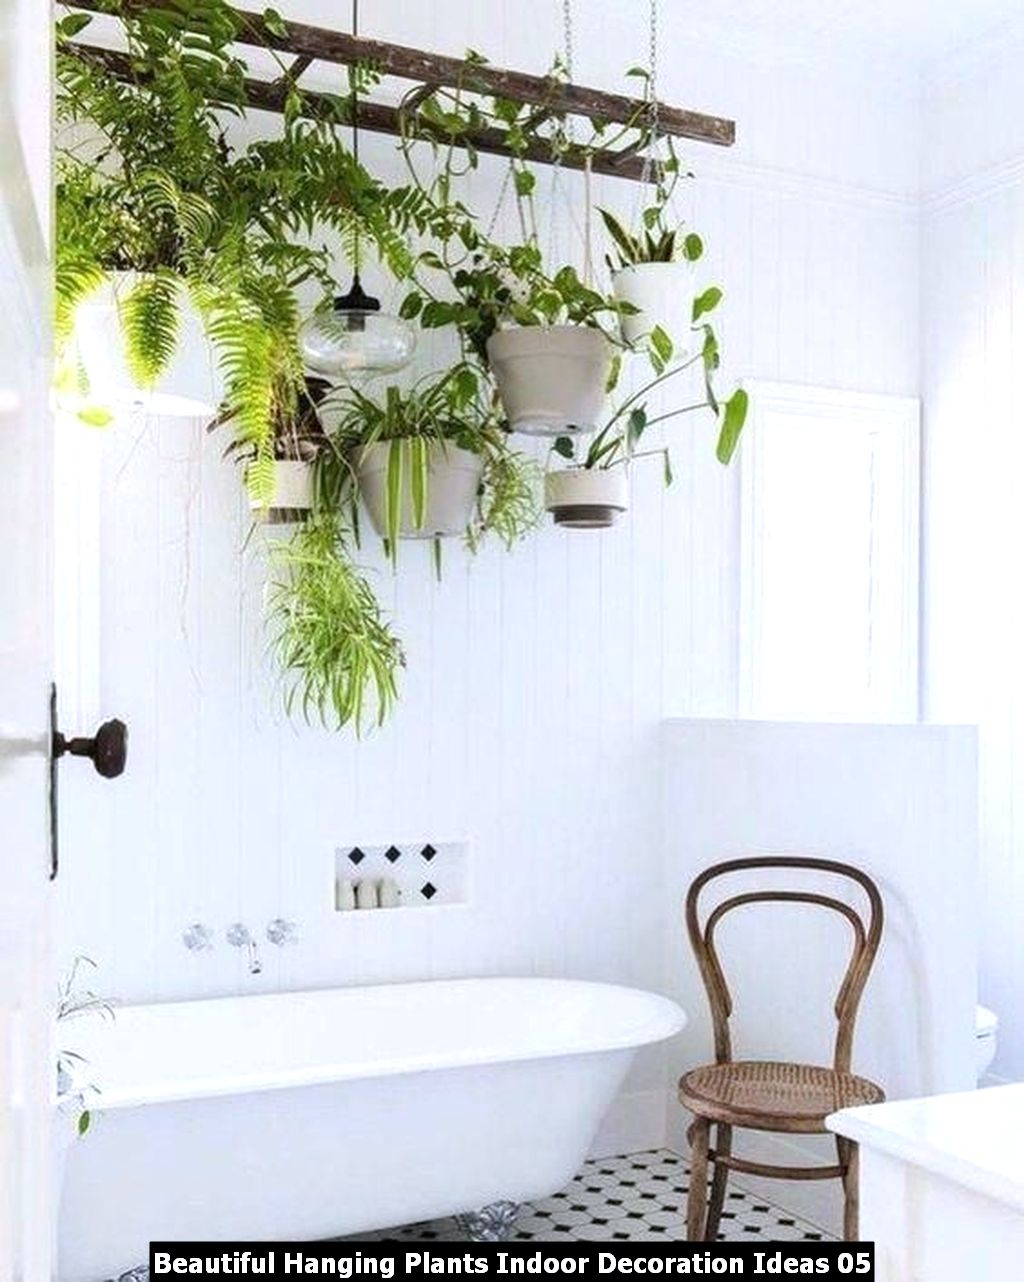 Beautiful Hanging Plants Indoor Decoration Ideas 05